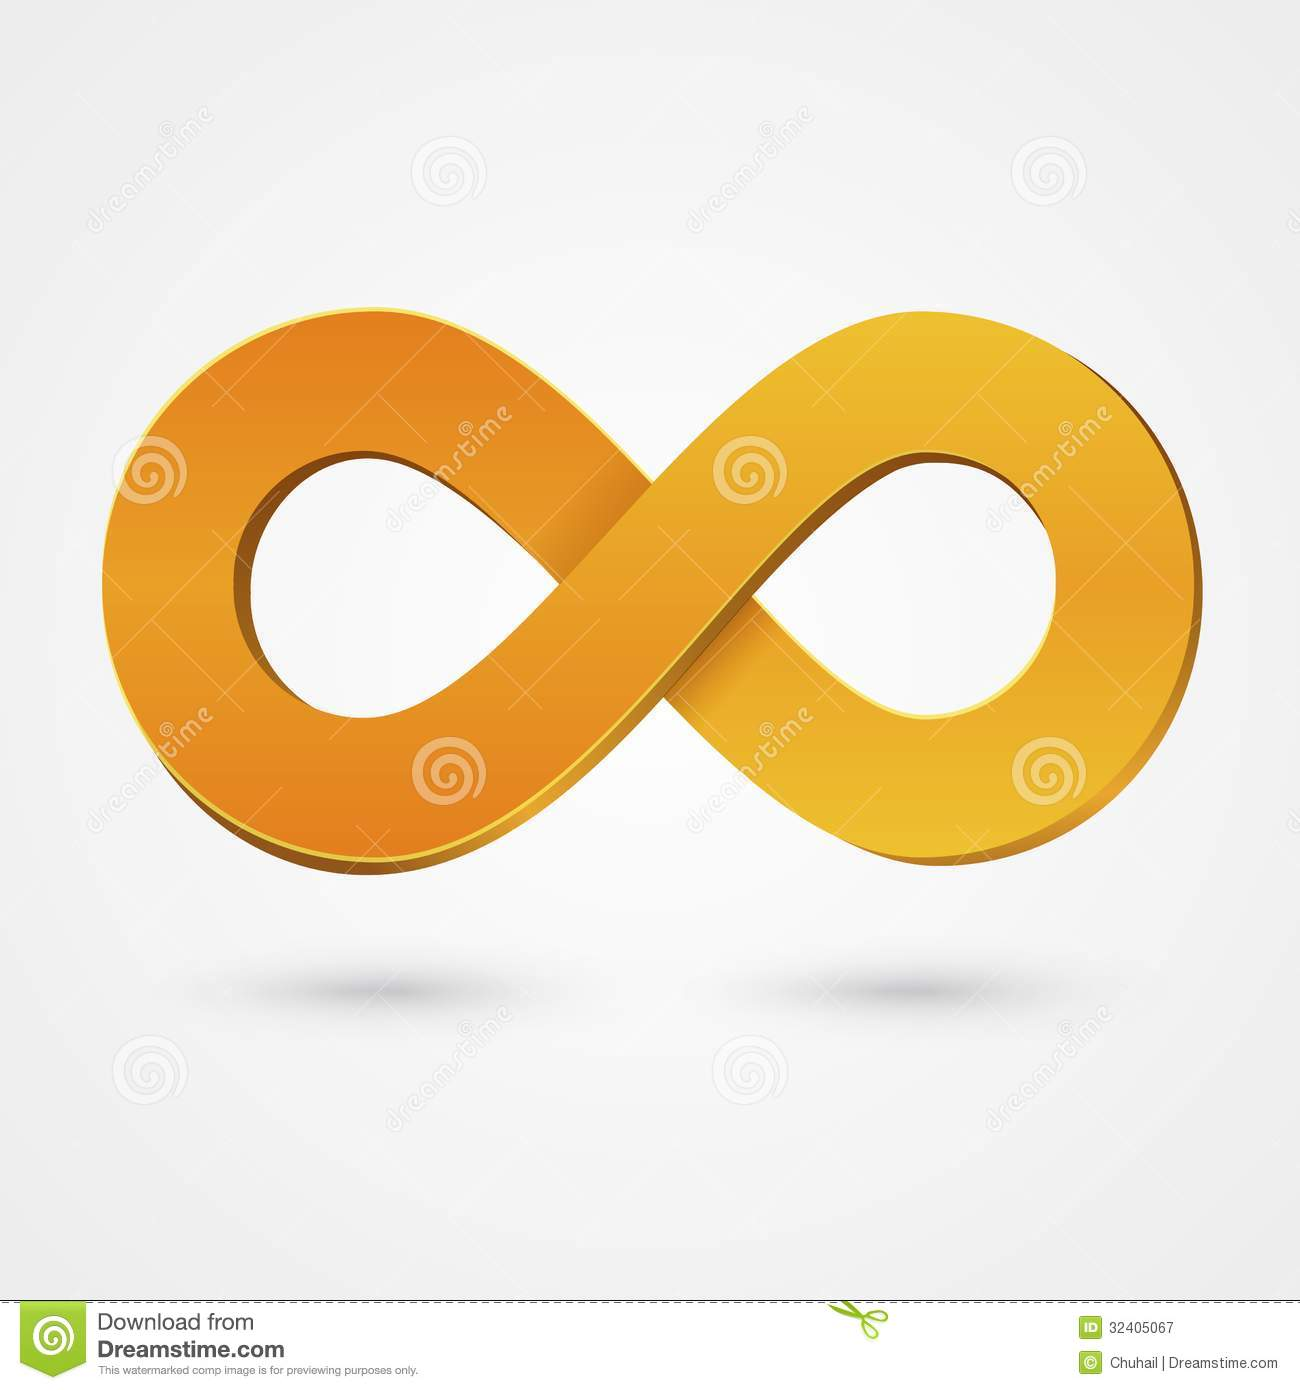 a description of the infinity symbol Infinity (symbol: ∞) is a concept describing something without any bound or  larger than any natural number philosophers have speculated about the nature  of.